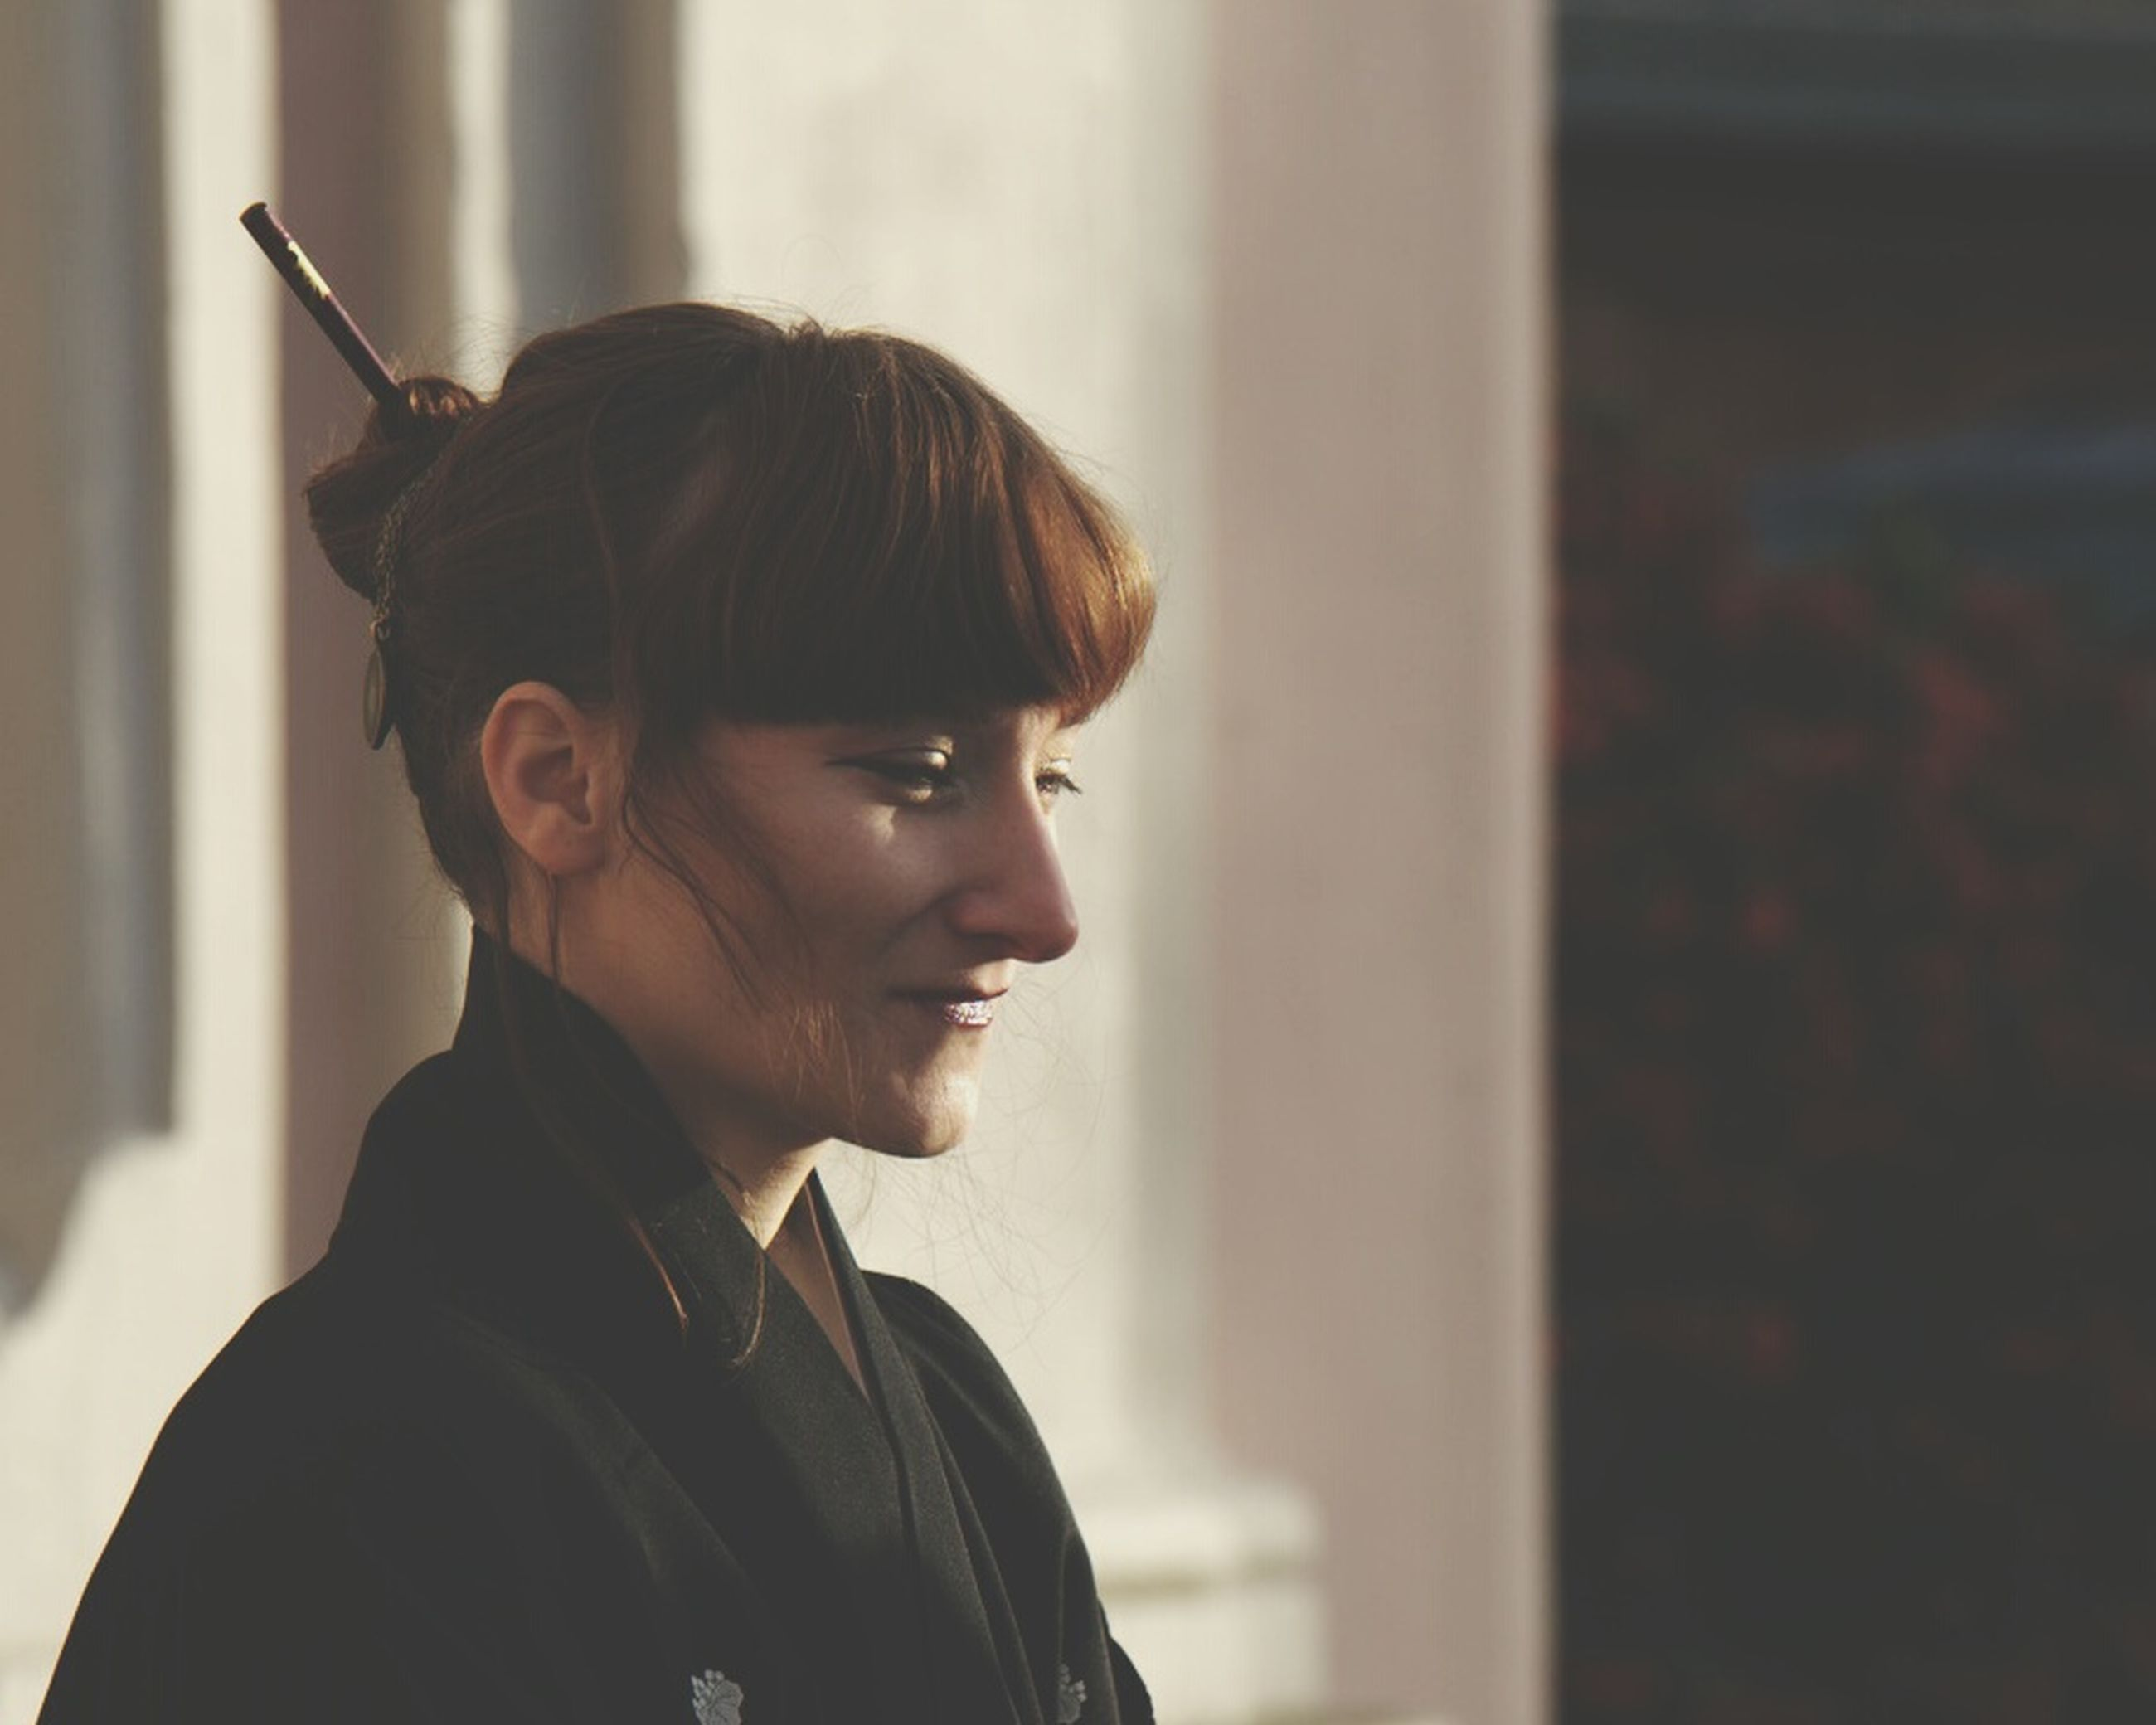 headshot, one person, portrait, side view, focus on foreground, real people, looking away, looking, young adult, indoors, hairstyle, smiling, lifestyles, standing, contemplation, young women, brown hair, bangs, beautiful woman, profile view